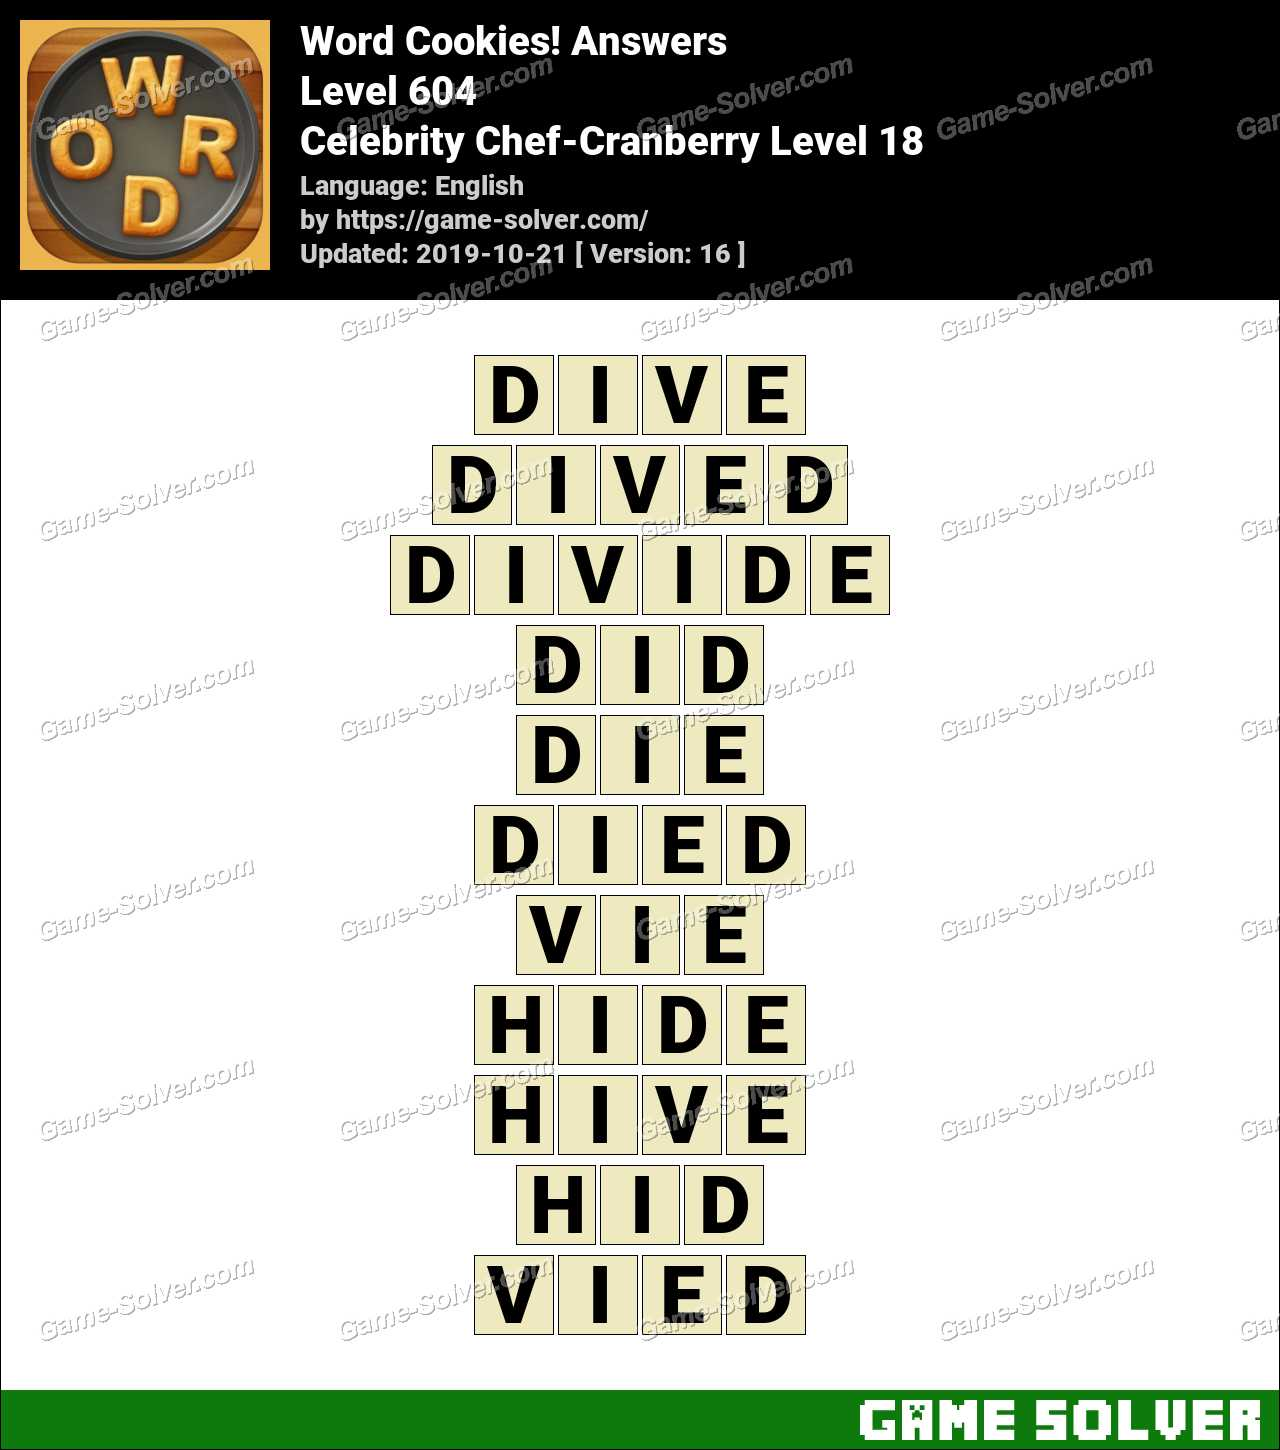 Word Cookies Celebrity Chef-Cranberry Level 18 Answers